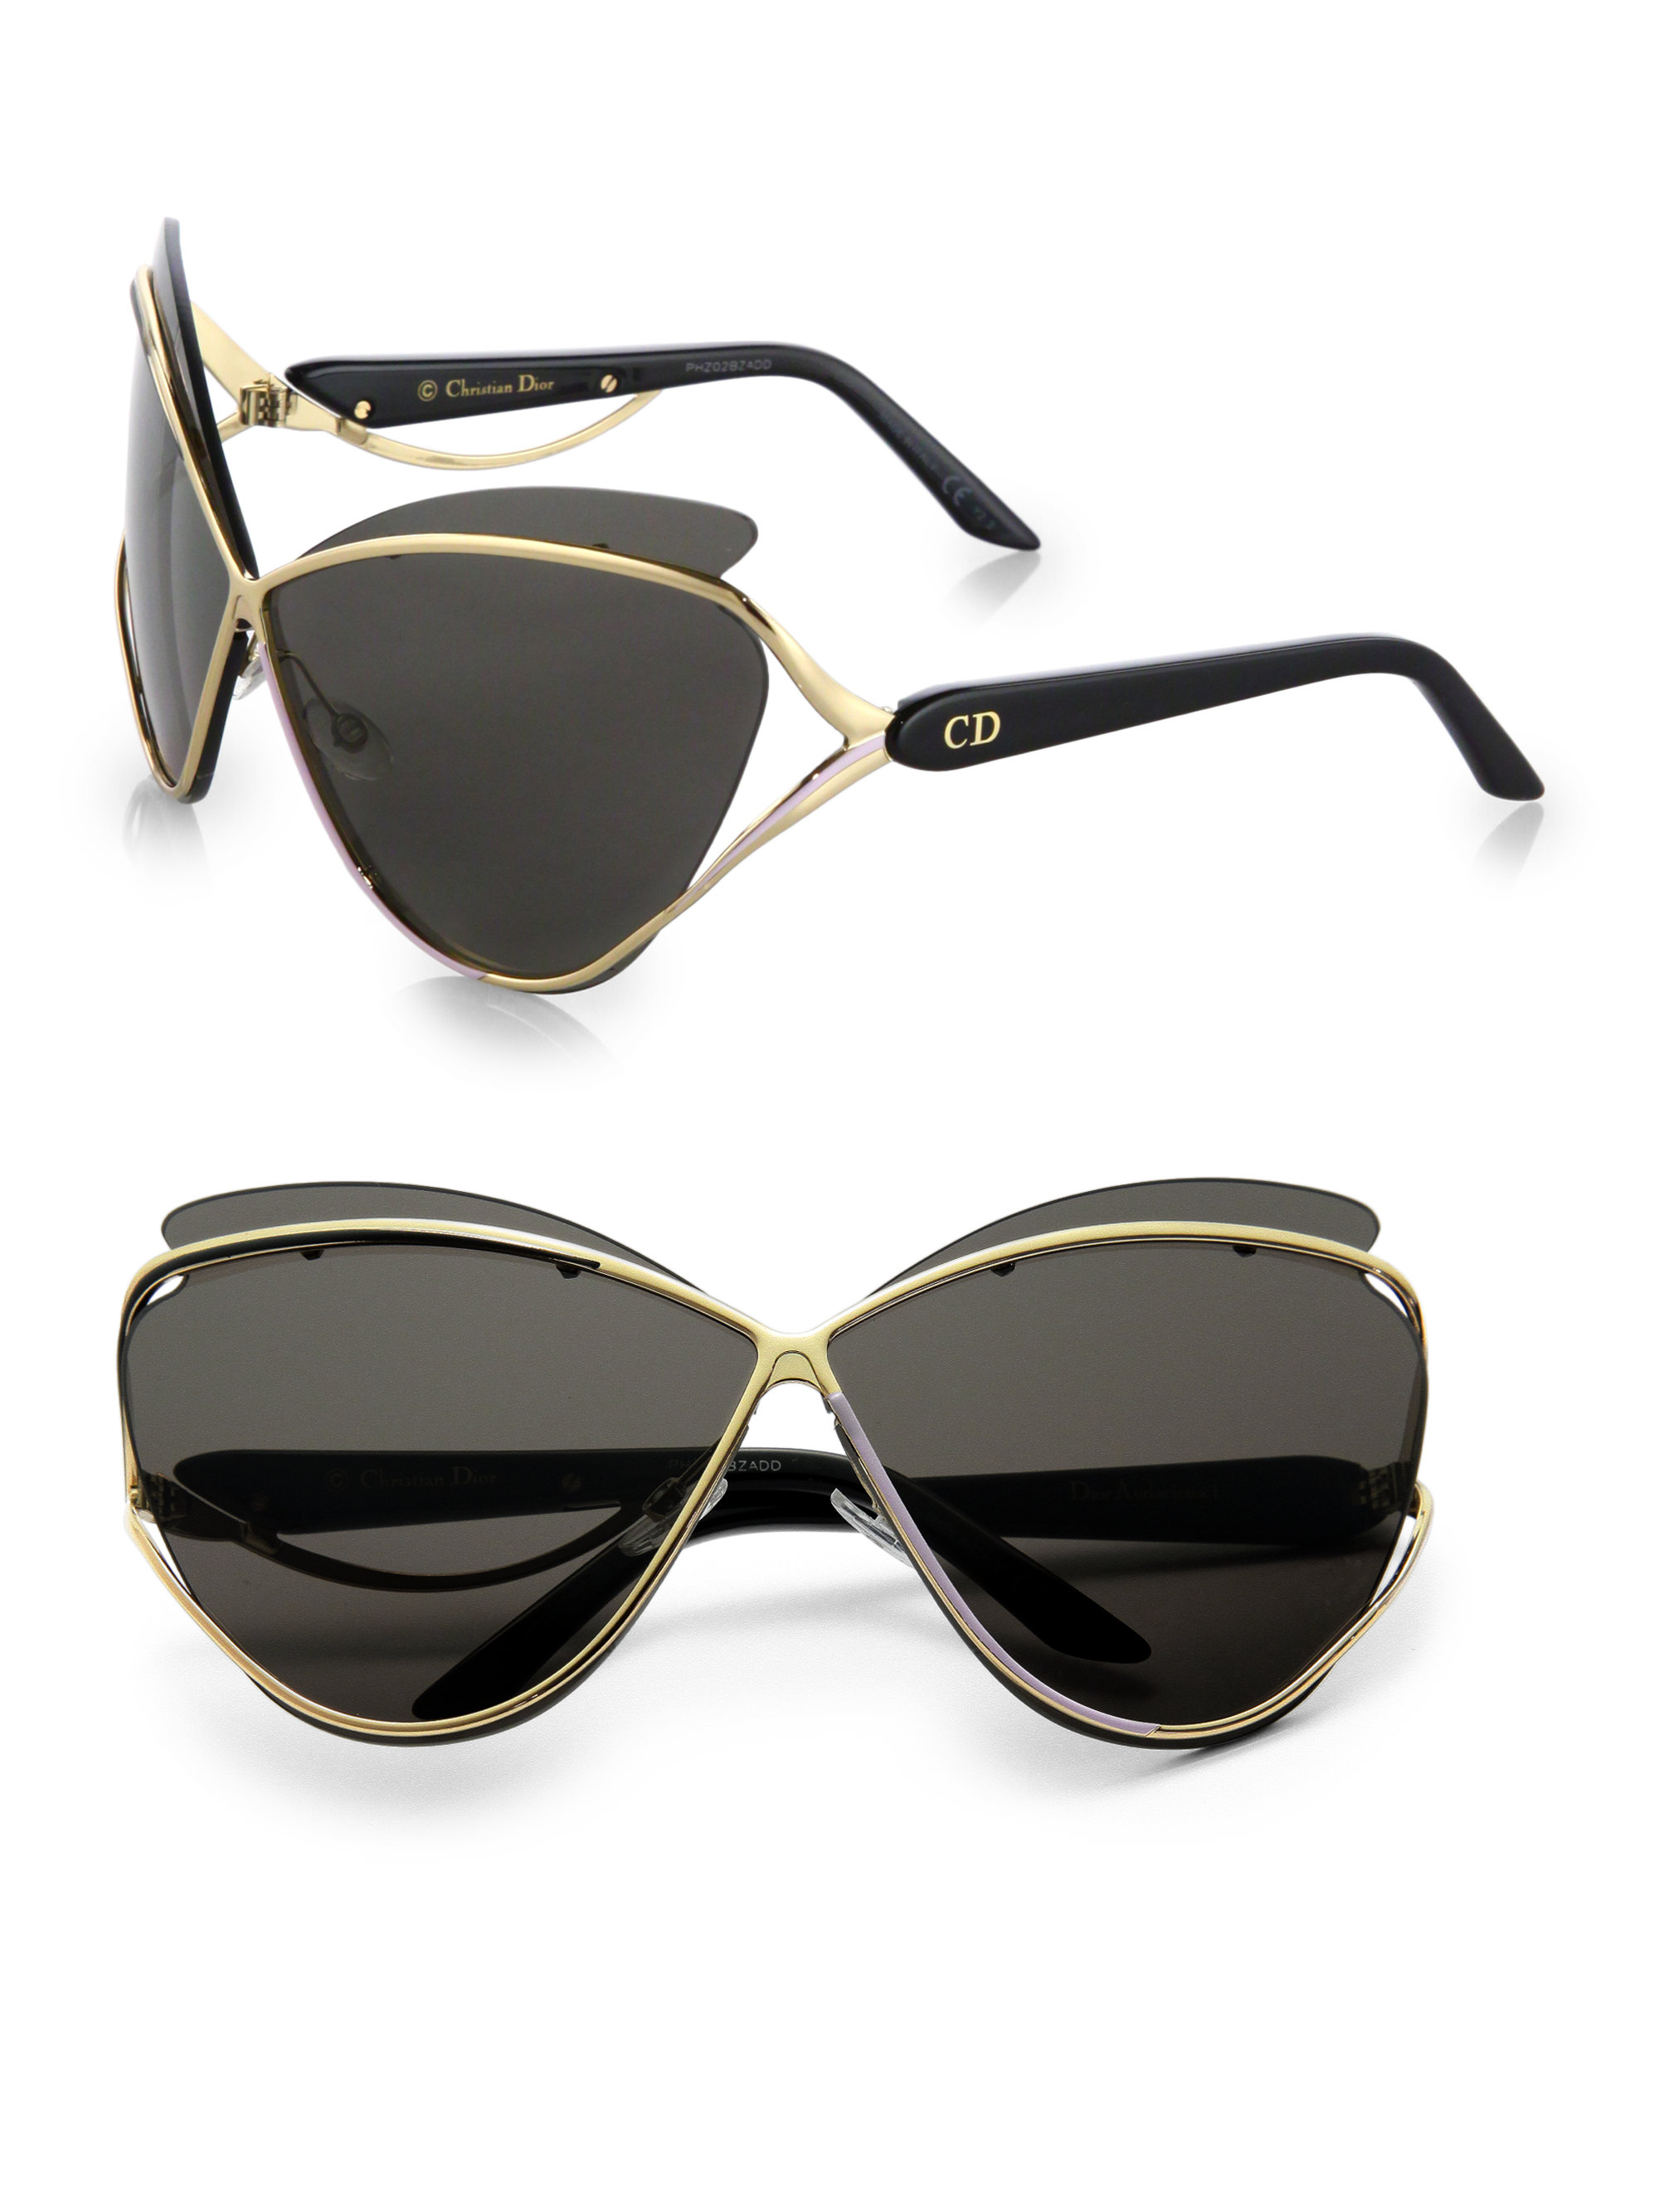 63ee34a74f Lyst - Dior Exaggerated Two-tone Cat s-eye Sunglasses in Black